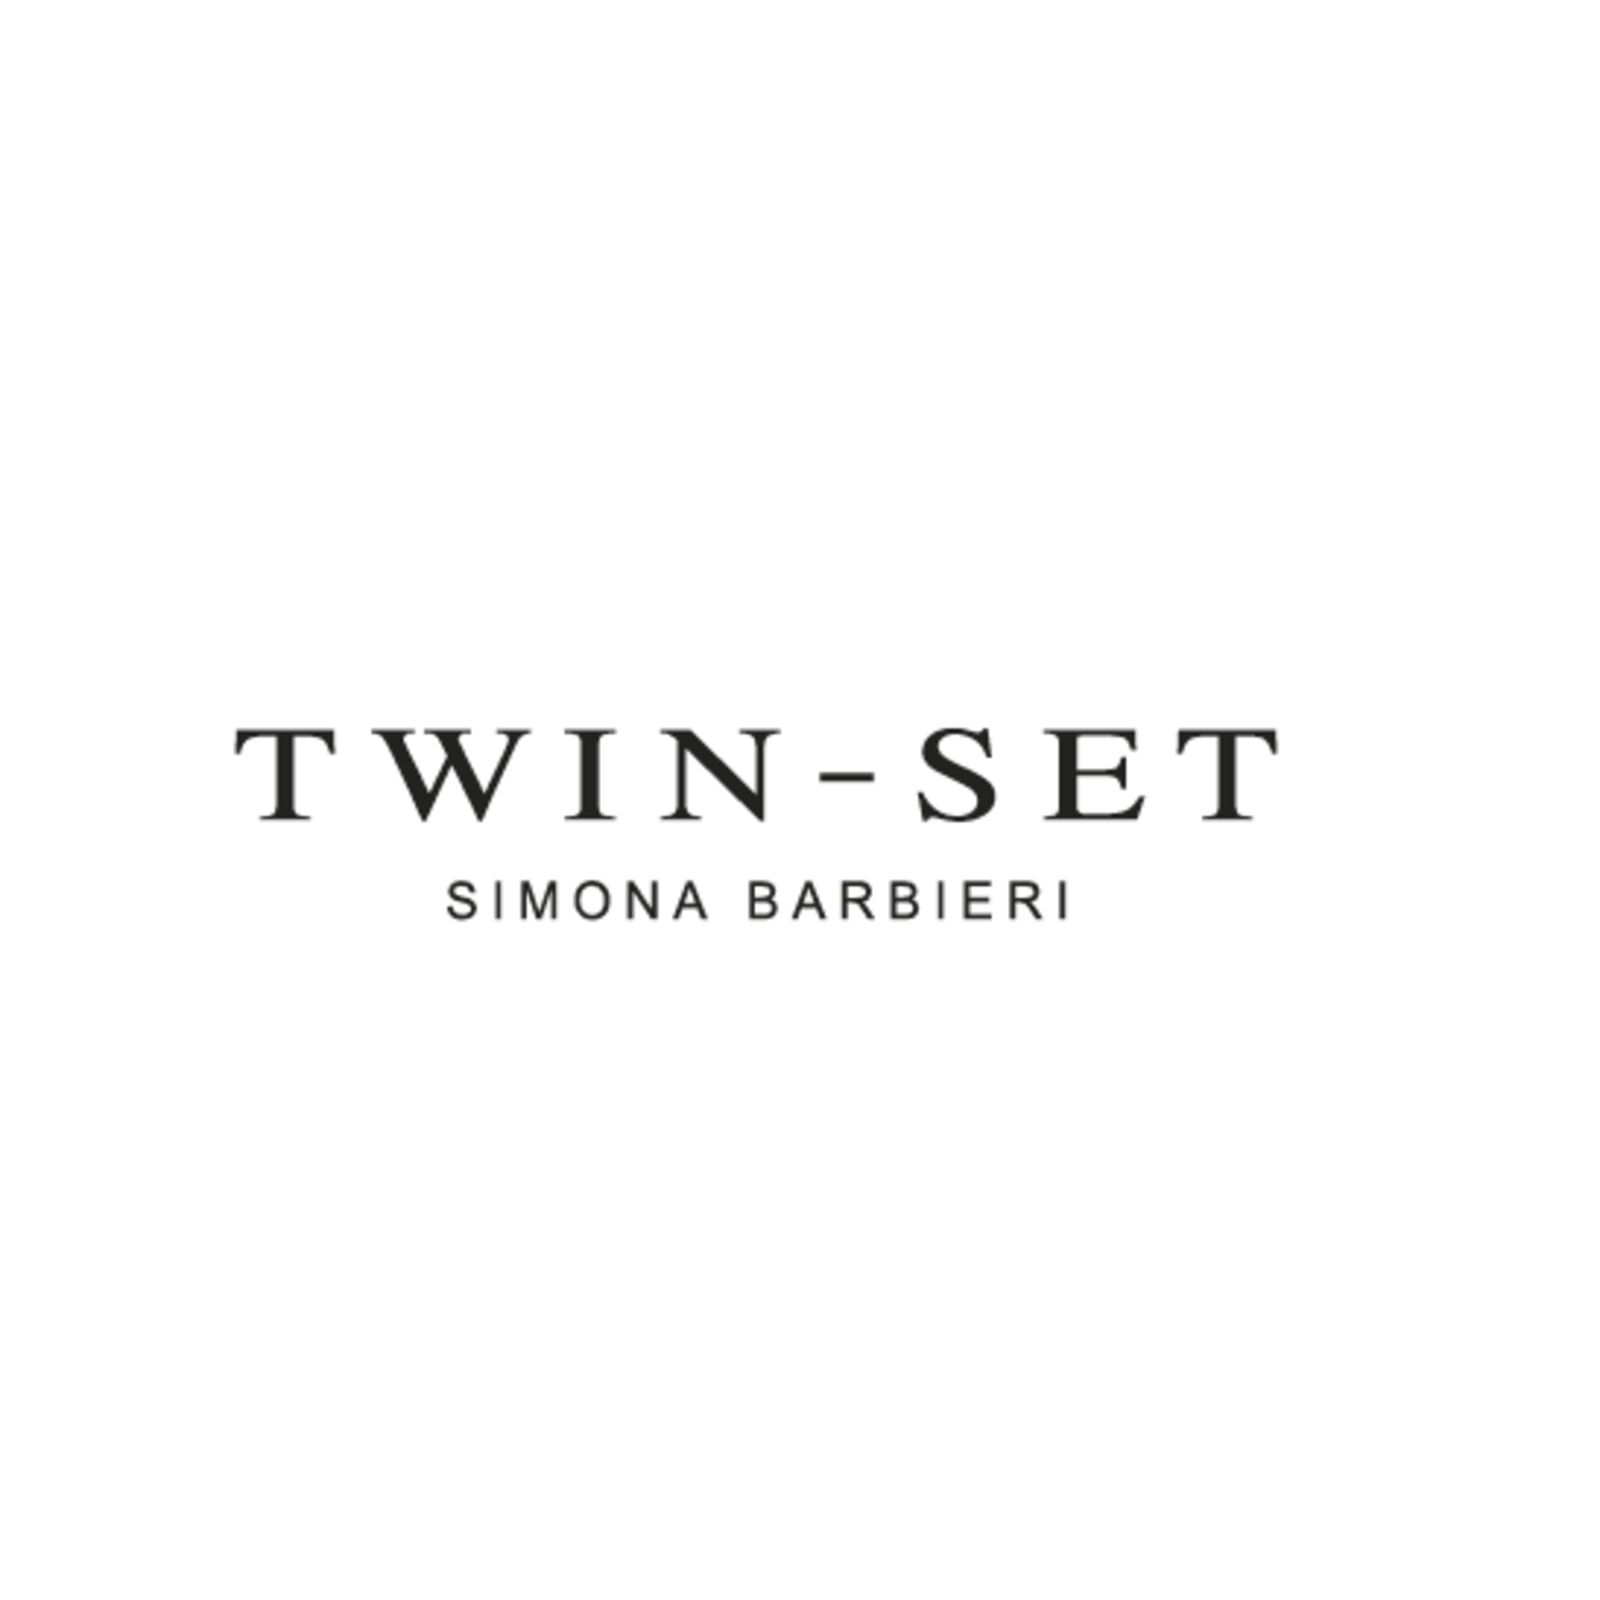 TWIN-SET SIMONA BARBIERI (Bild 1)